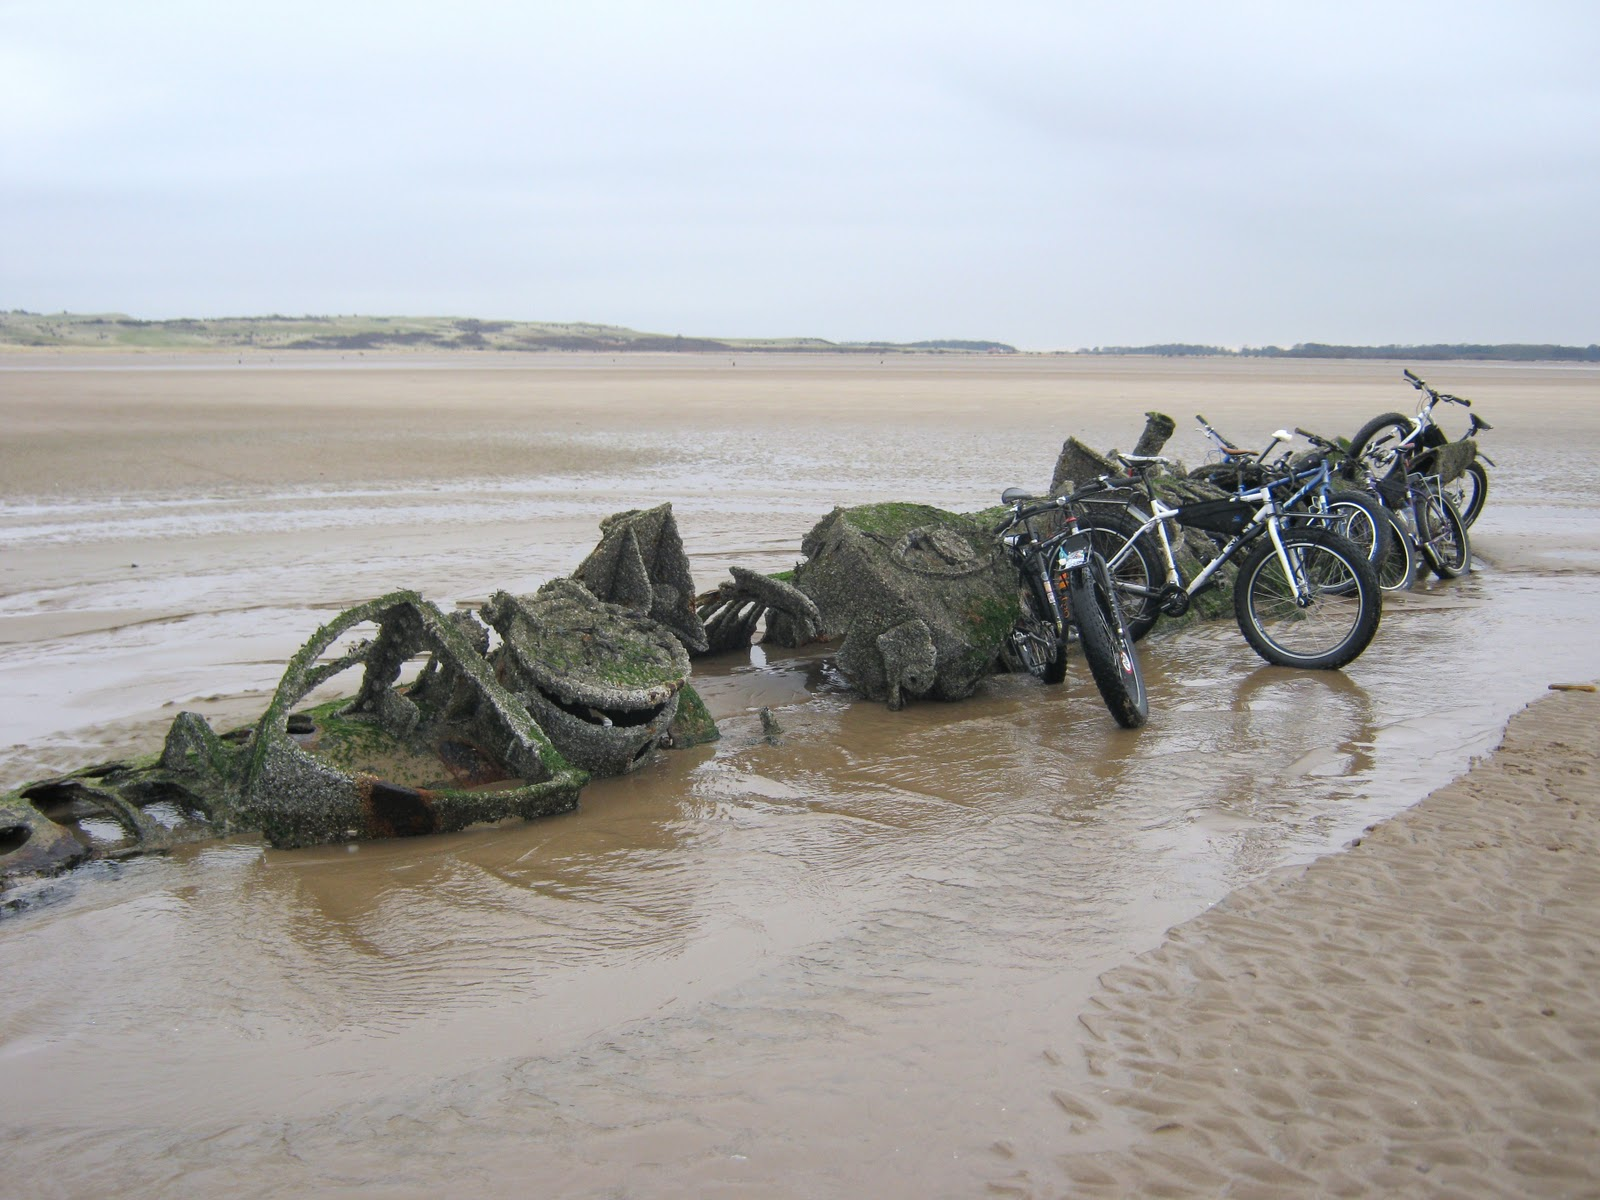 WW2 Shipwrecks http://coastkid.blogspot.com/2012/01/ww2-xt-class-submarine-wrecks-aberlady.html